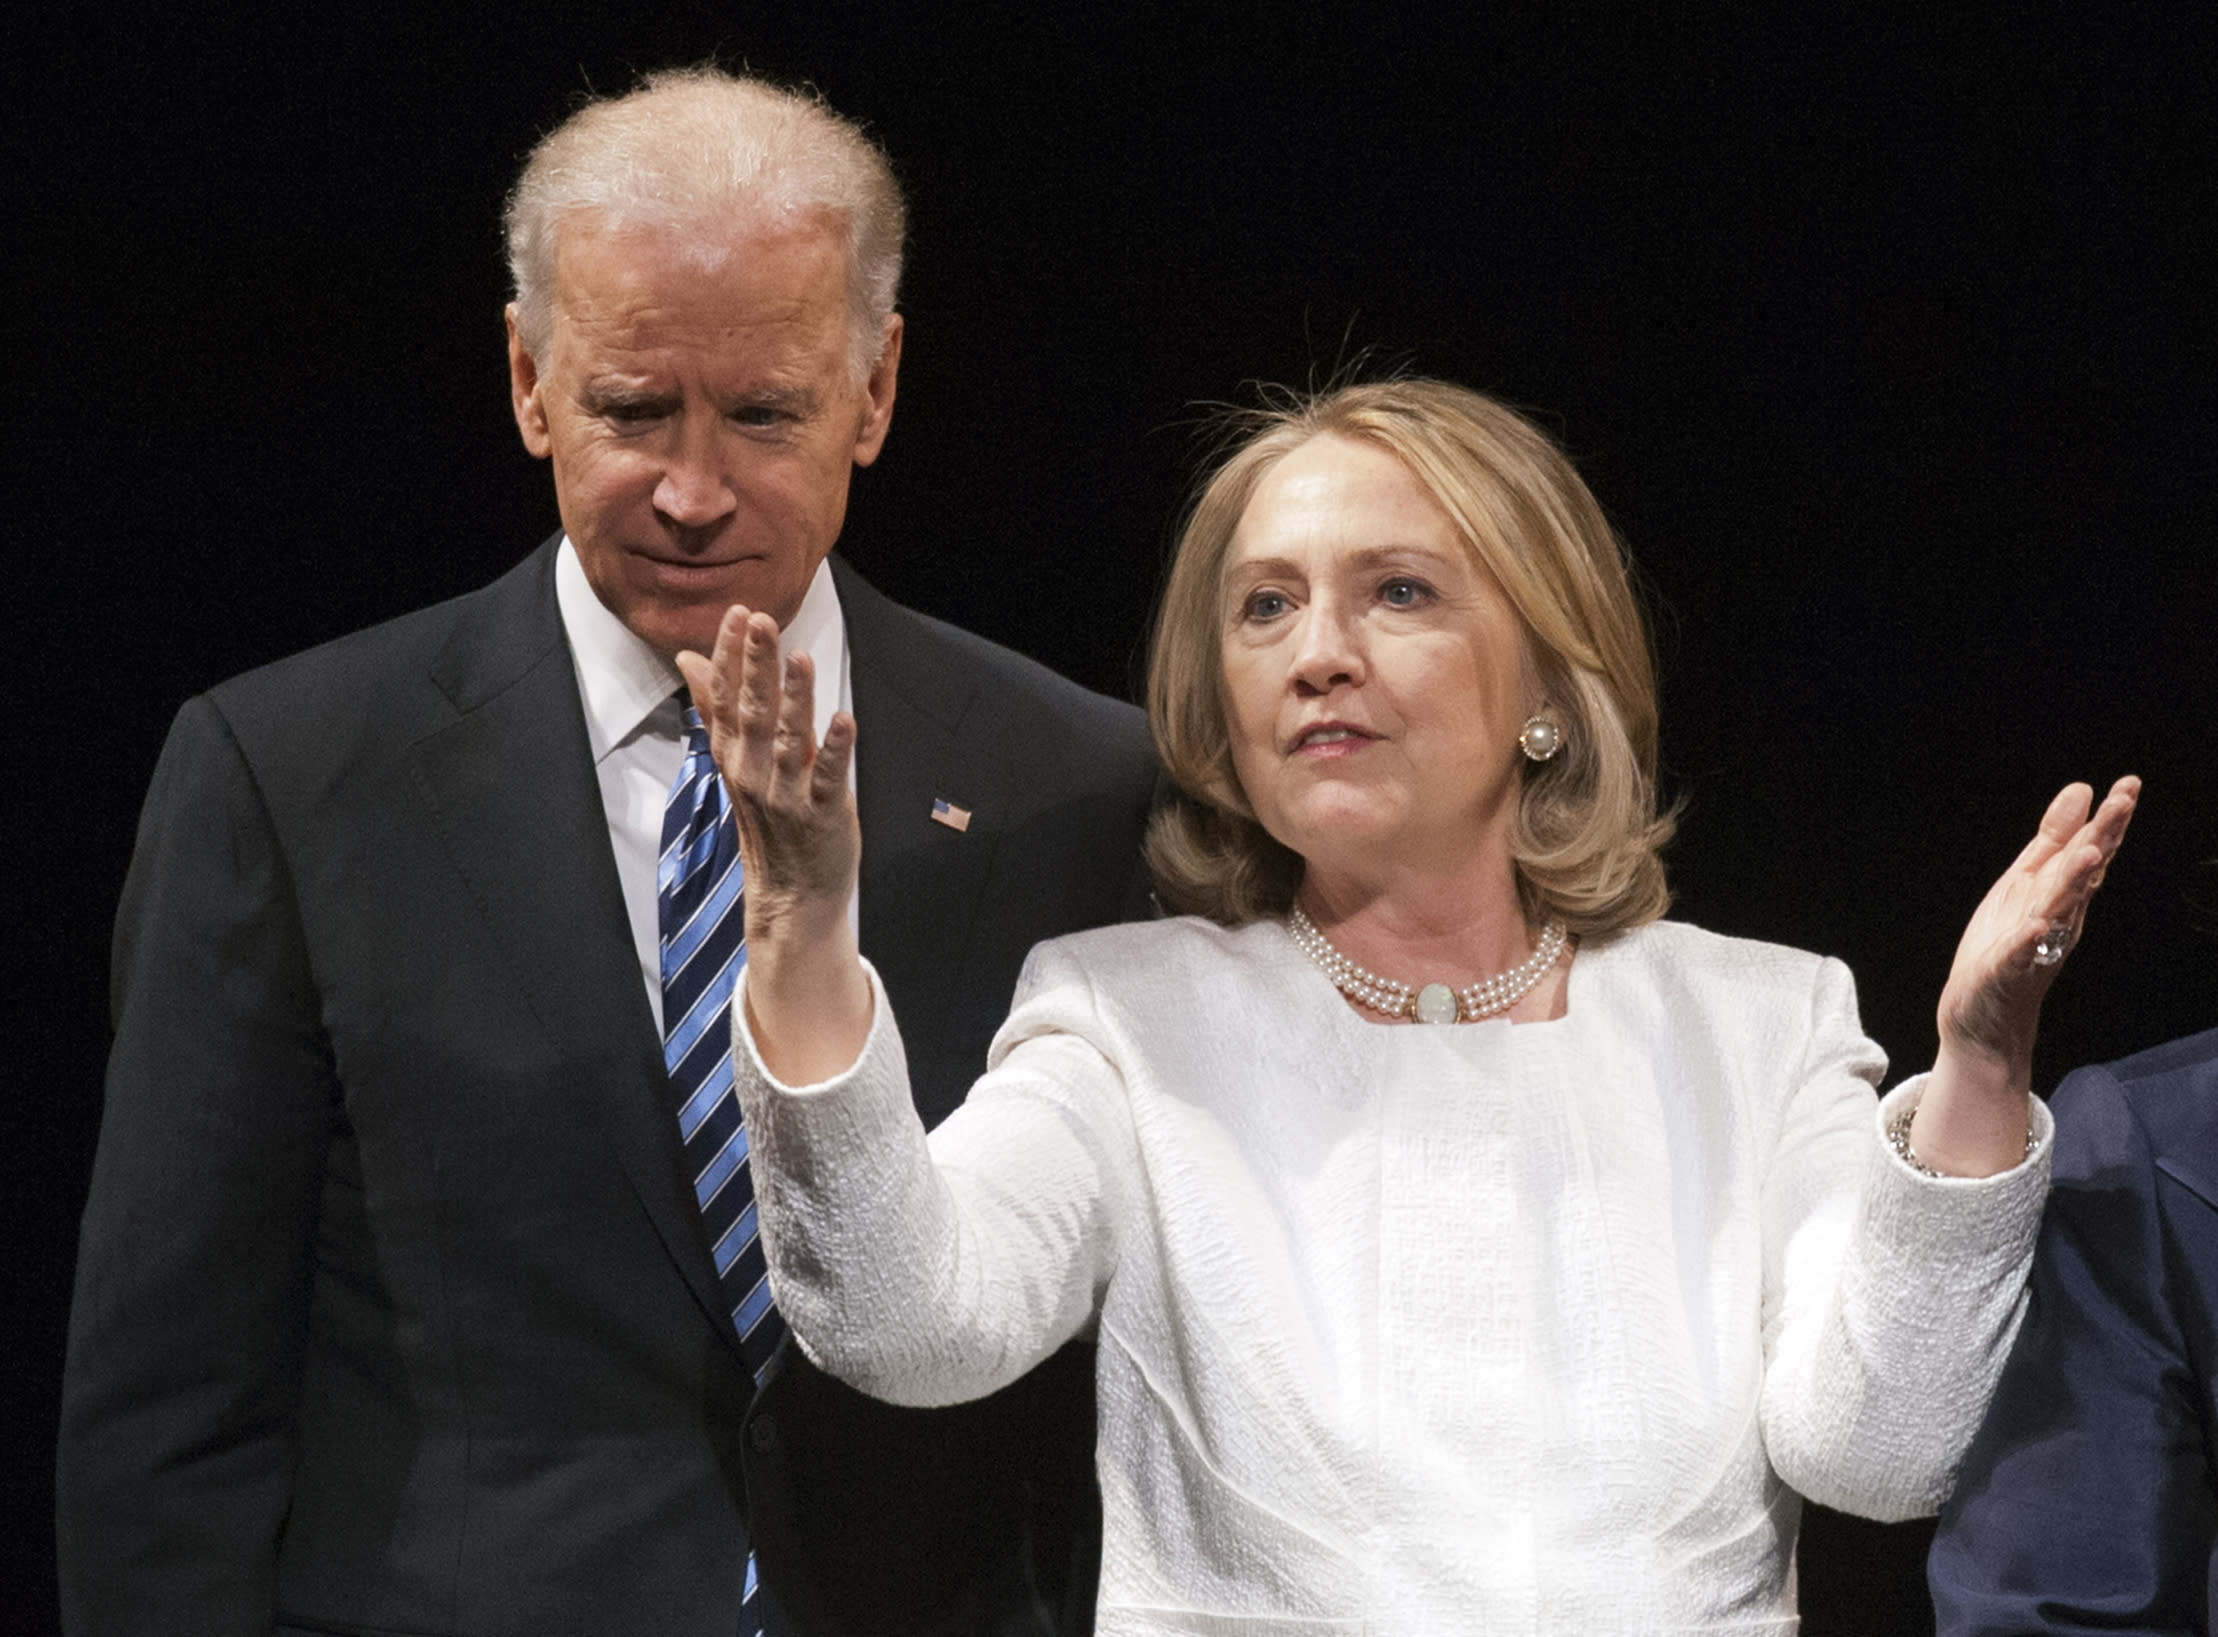 Clinton quietly trying to discourage Biden from a 2016 bid